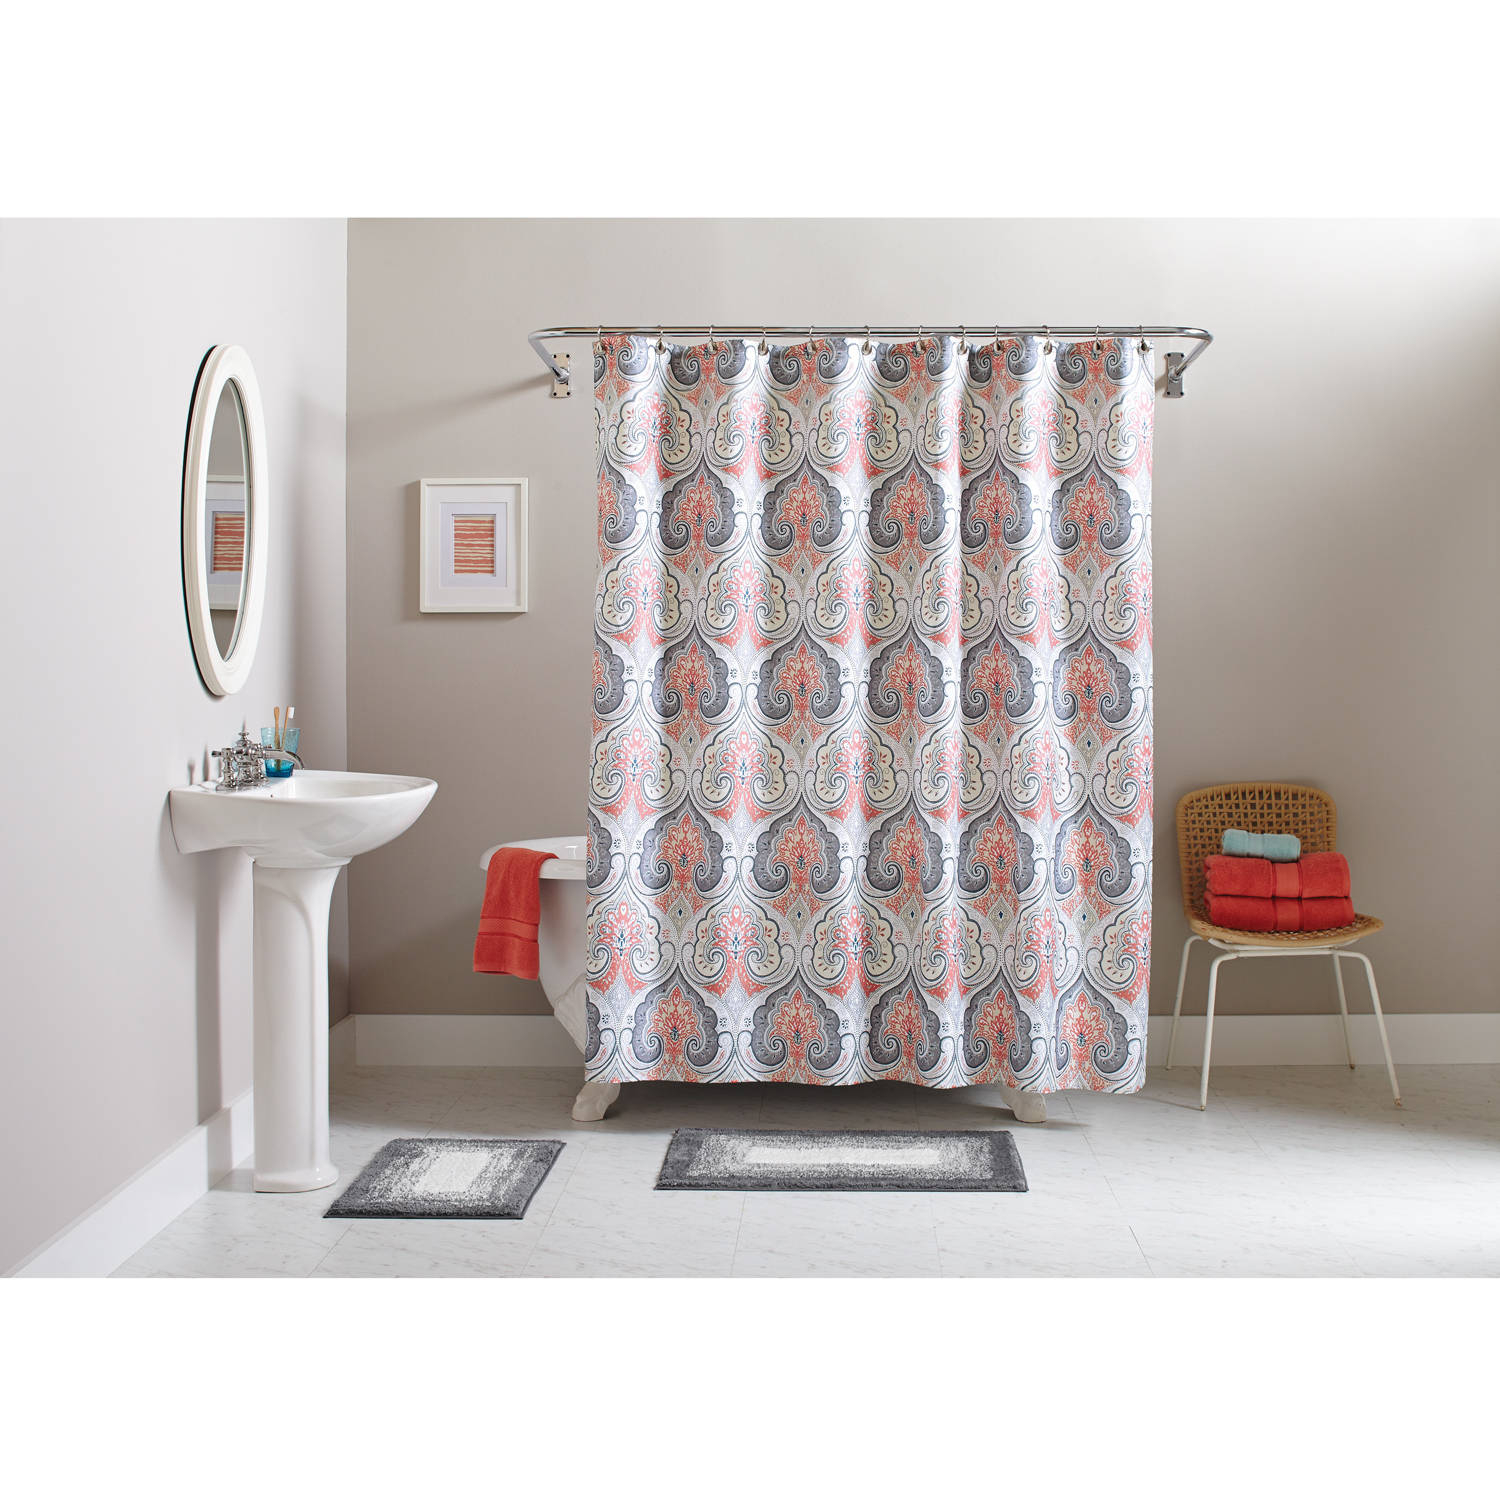 Better Homes And Gardens Shower Curtains Walmart inside proportions 1500 X 1500